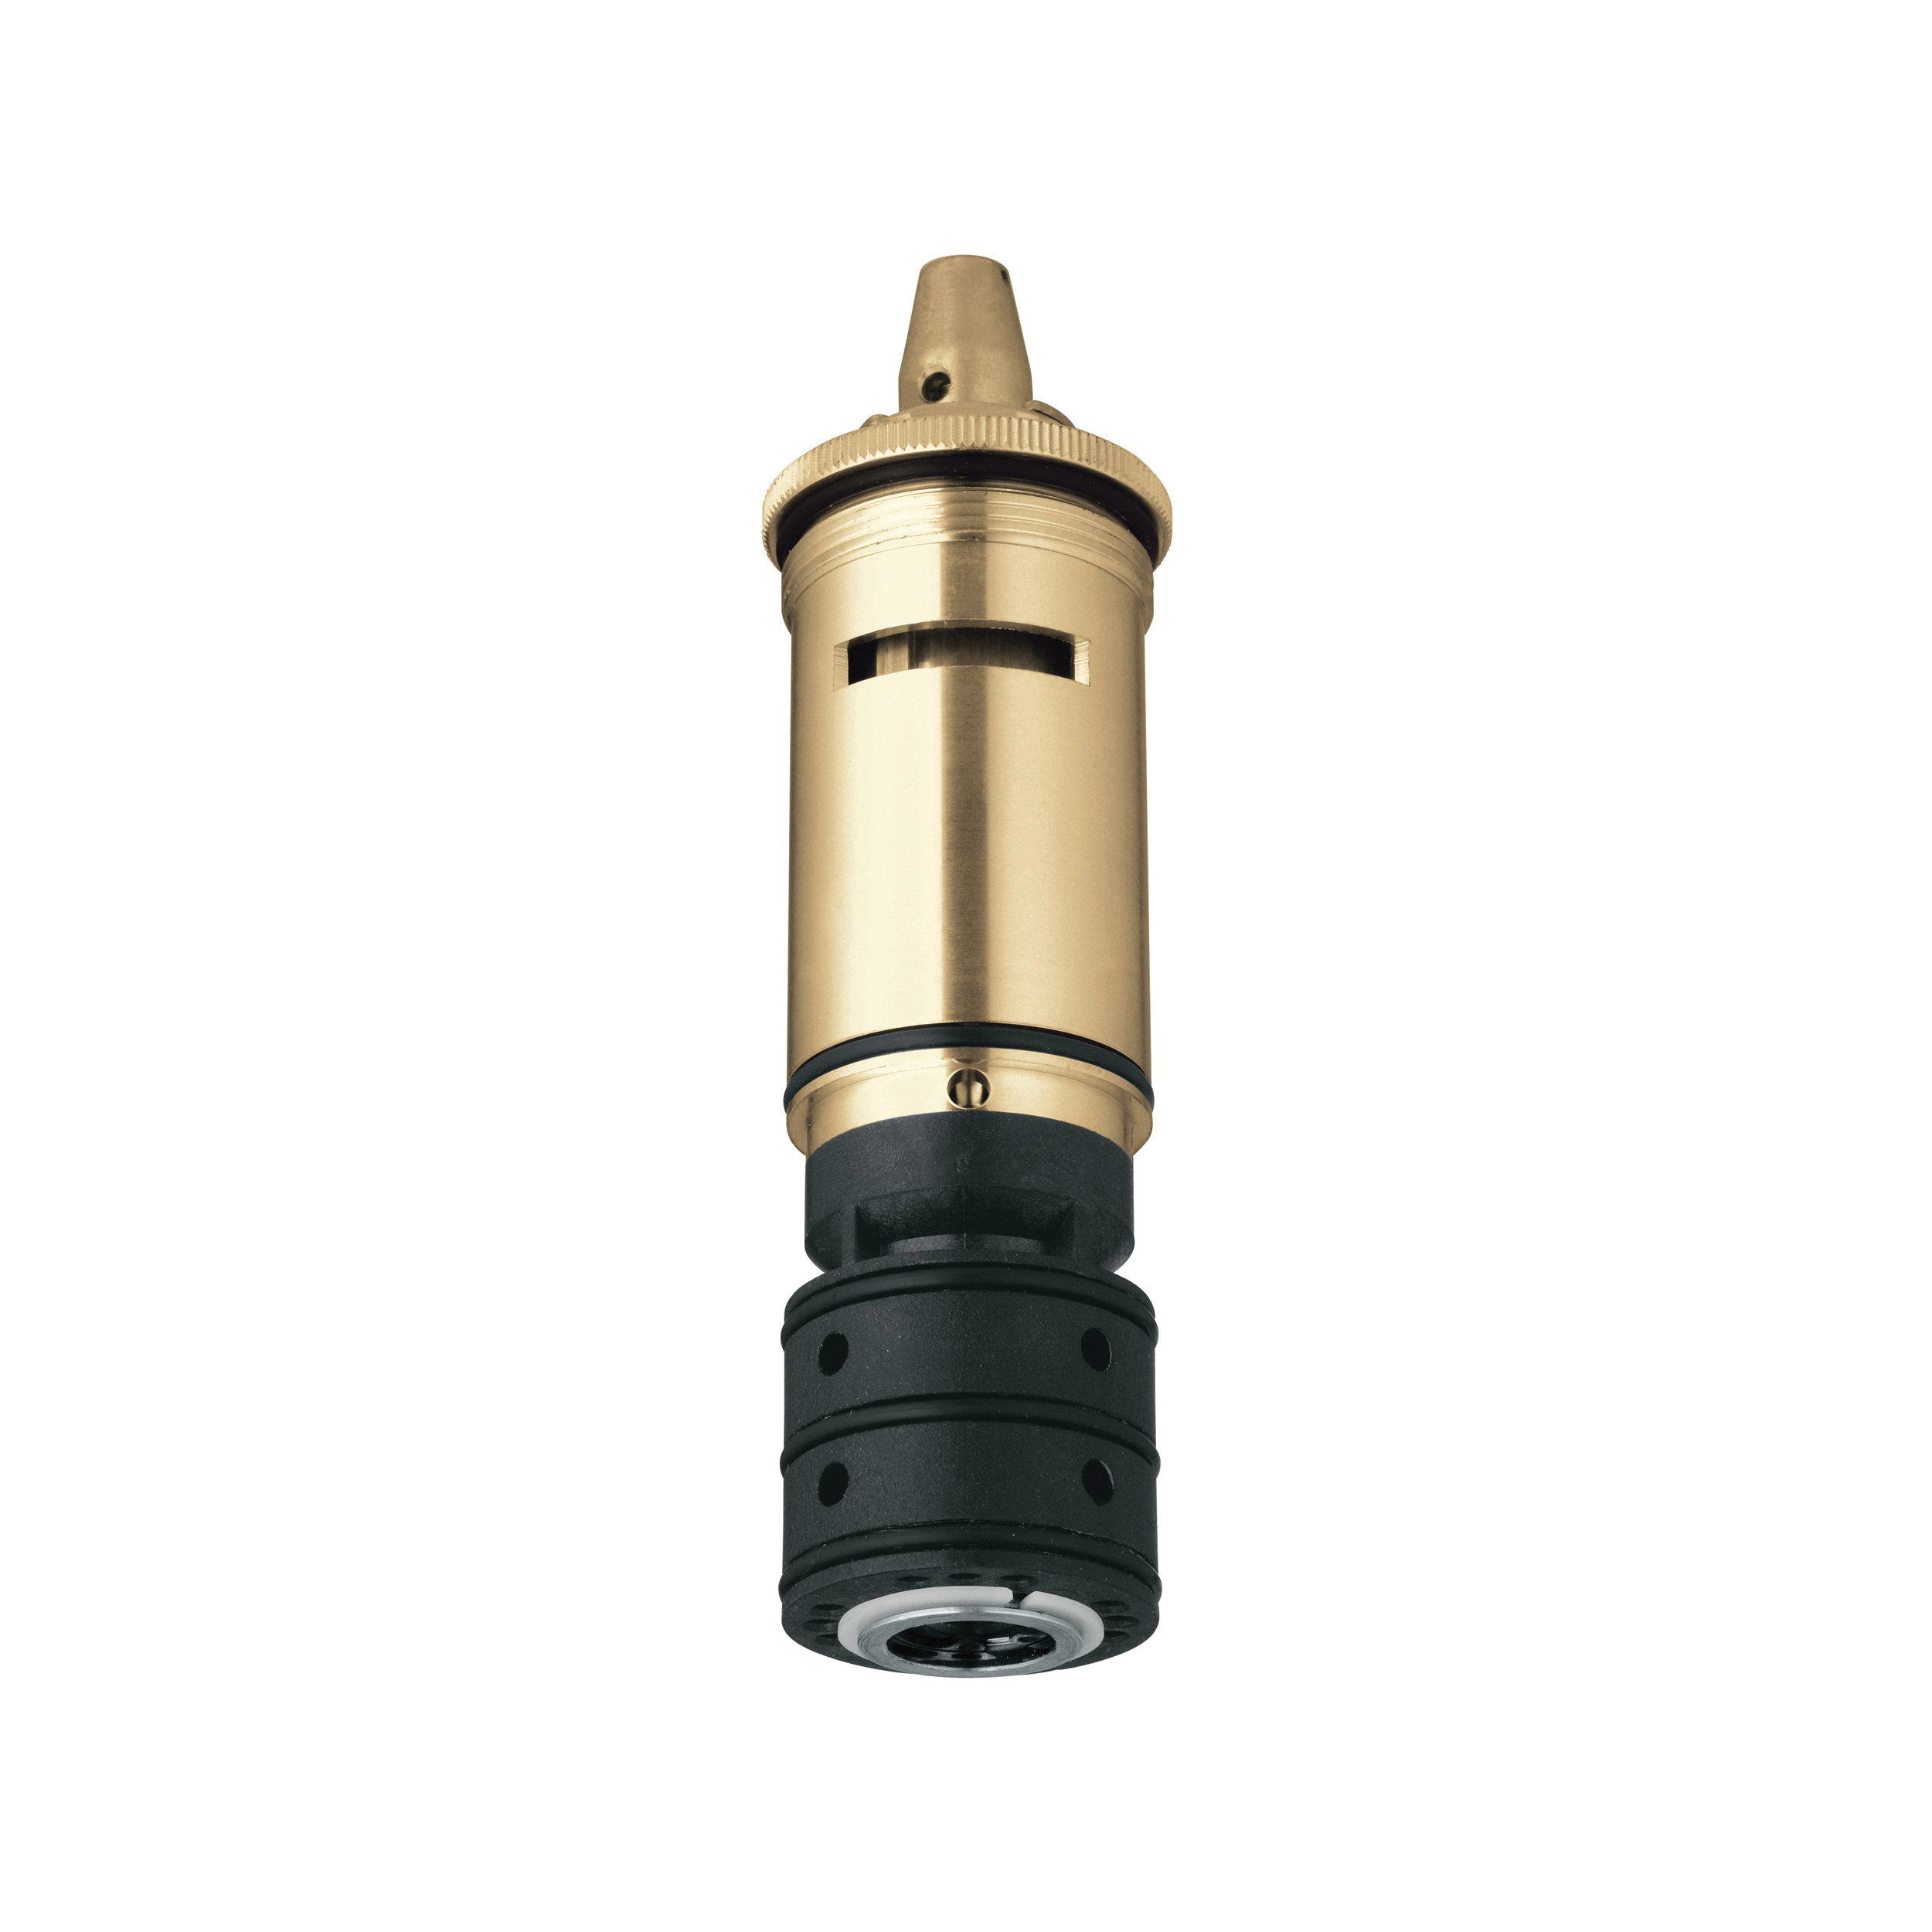 GROHE 47040000 Thermostat Reverse Cartridge, 3/4 in, For Use With: Grohmix® Pressure Balance Thermostatic Valve Trim